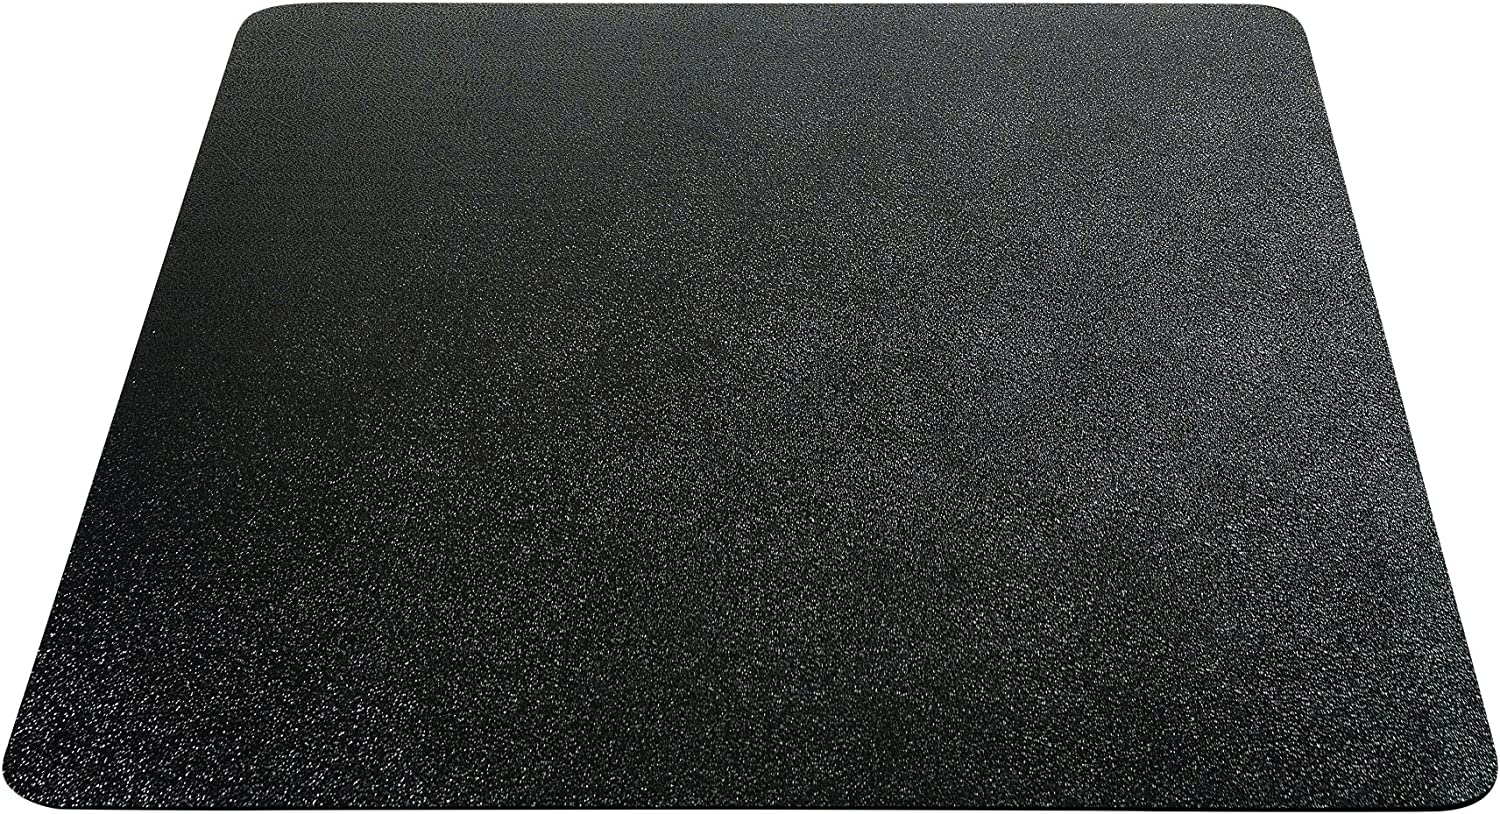 "Deflecto EconoMat Chair Mat, Non-Studded for Hard Floors, Straight Edge, 36"" x 48"", Black (CM21142BLKCOM)"